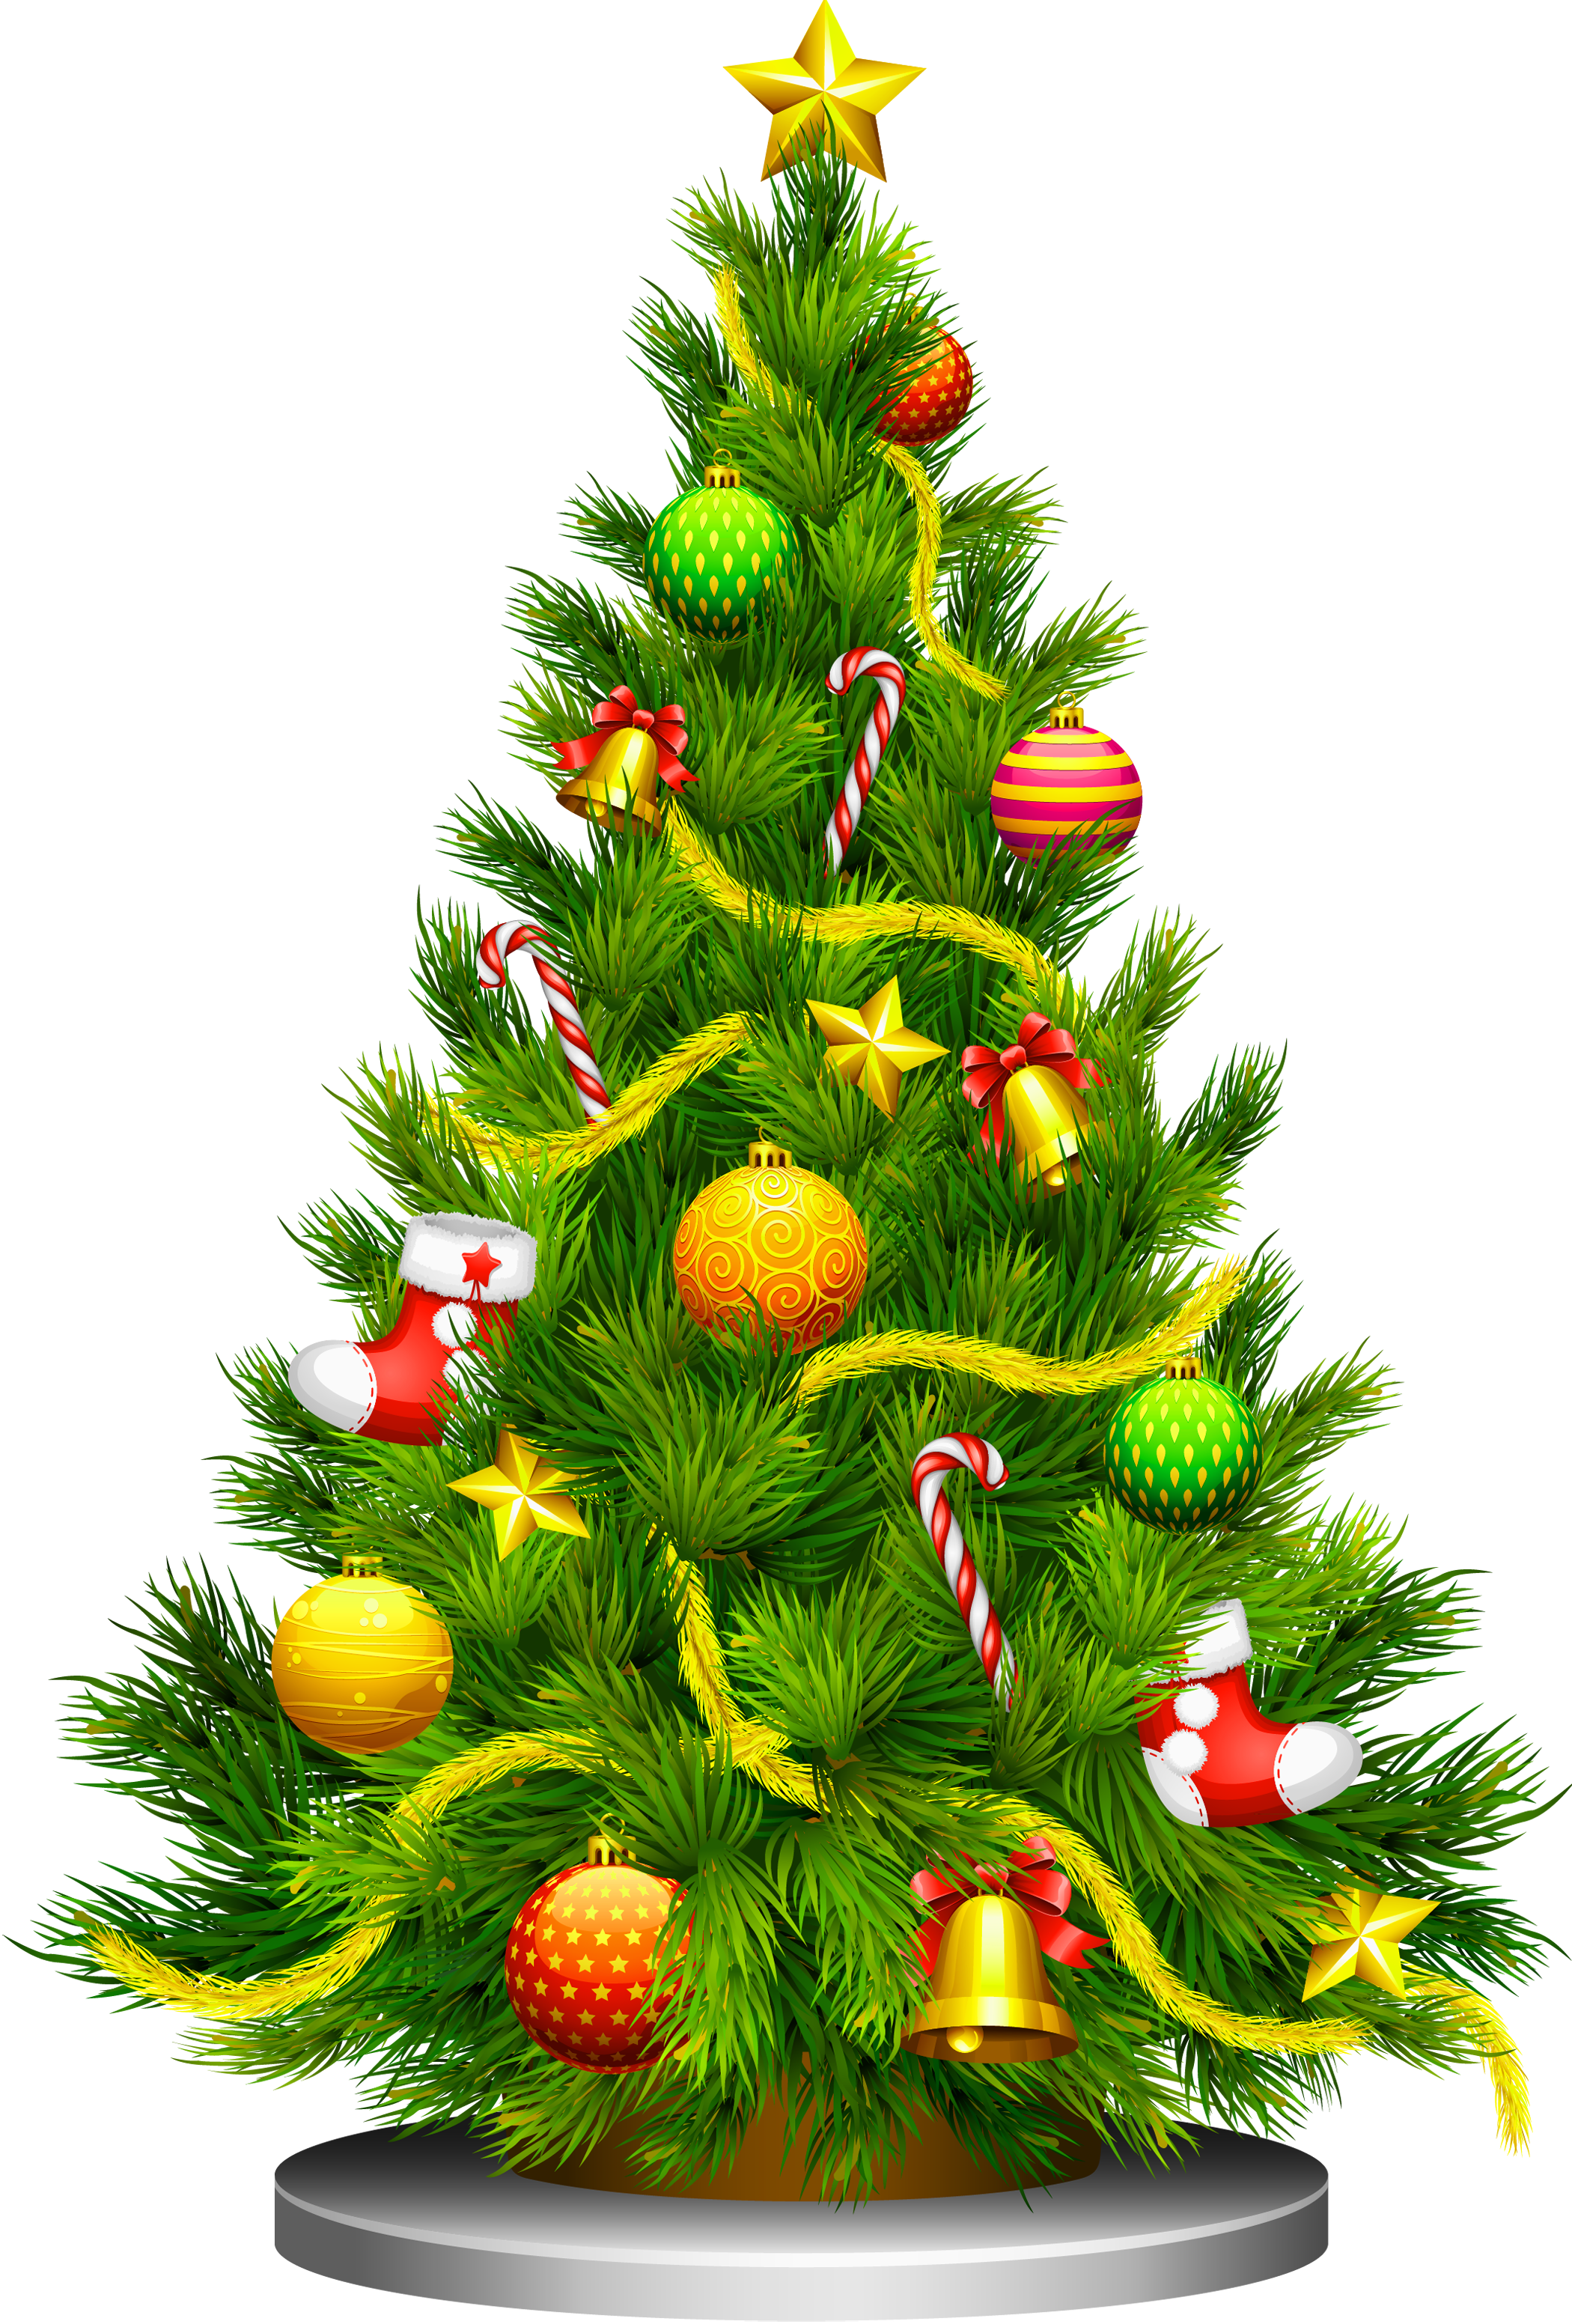 Christmas tree clipart png image freeuse download christmas tree - Free Large Images | Things to Wear | Pinterest ... image freeuse download